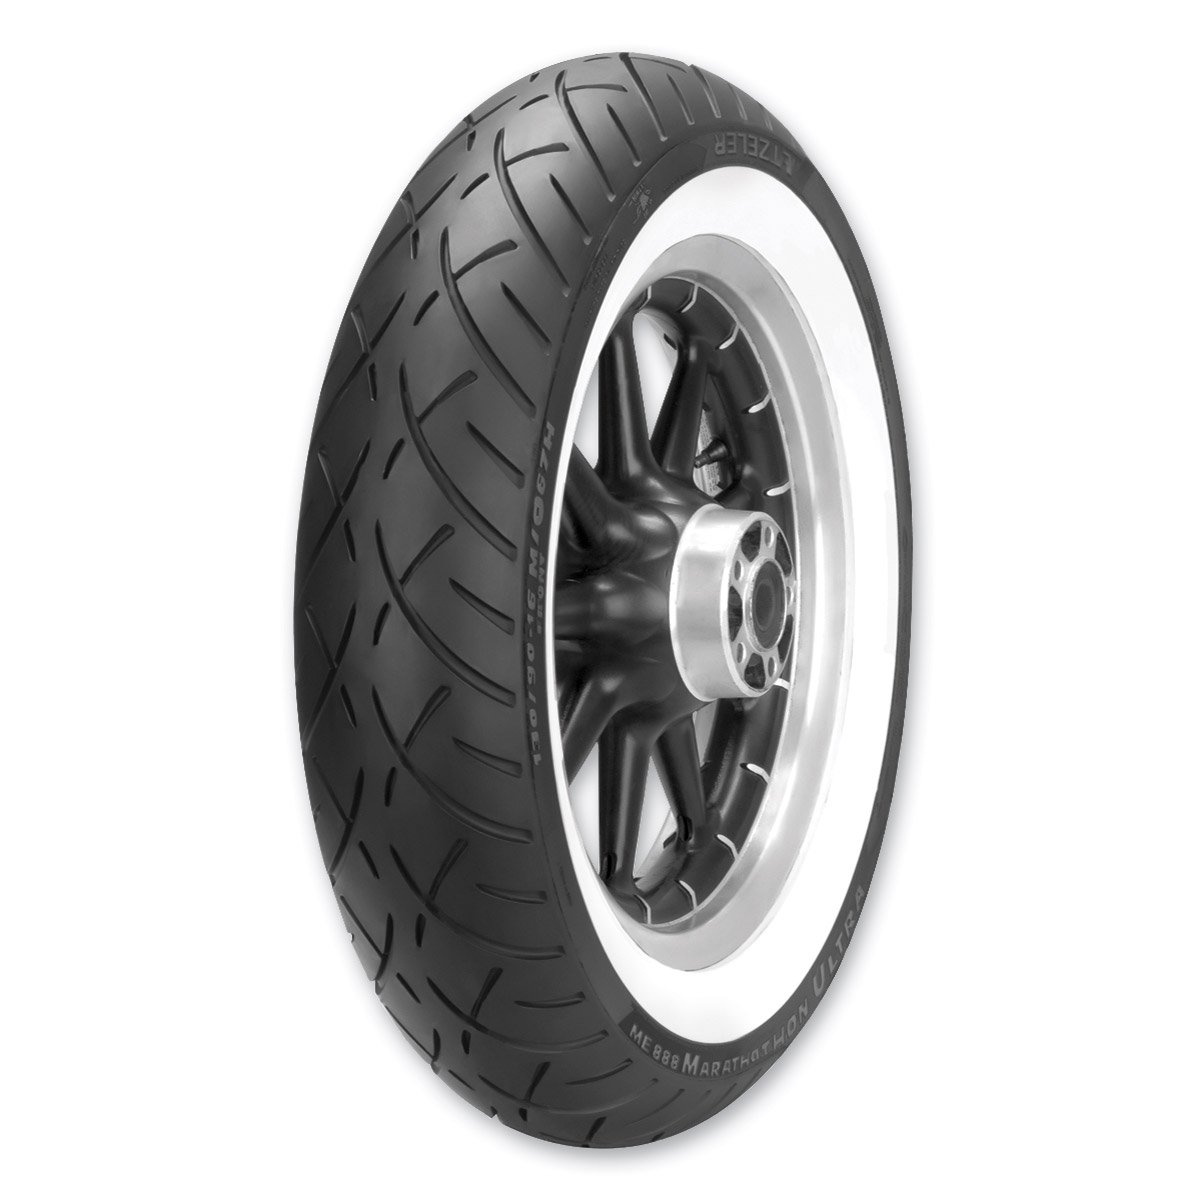 Metzeler ME888 Marathon Ultra Tire - Front - MT90B16 - Wide Whitewall , Position: Front, Rim Size: 16, Tire Application: Cruiser, Tire Size: MT90-16, Tire Type: Street, Load Rating: 72, Speed Rating: H, Tire Construction: Bias 2407500 by Metzeler (Image #1)